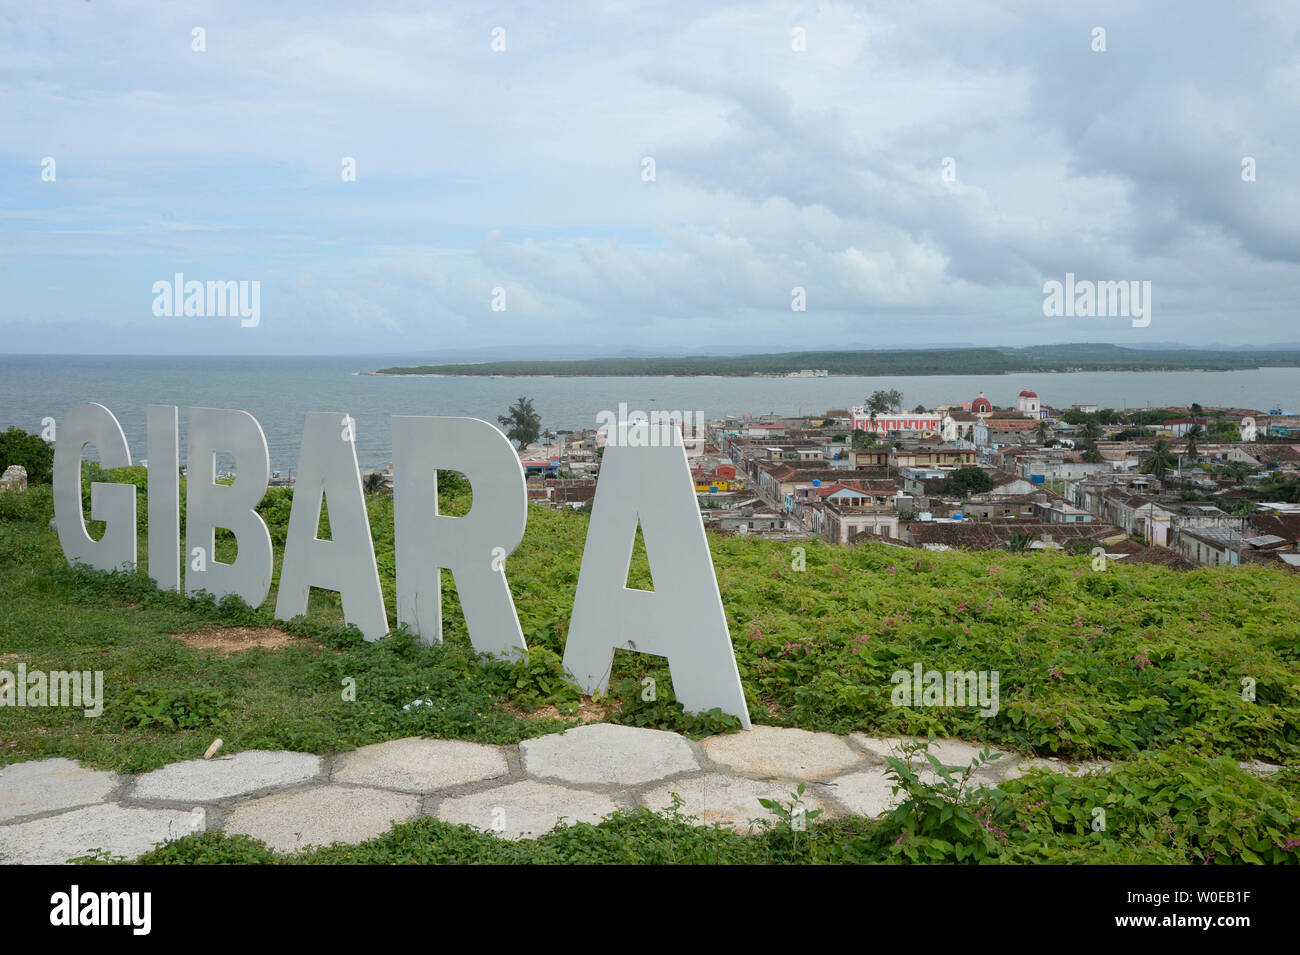 Cuba, Holguin area, GIBARA, a giant sign bearing the name of the city GIBARA is standing over the small town on a hill Stock Photo